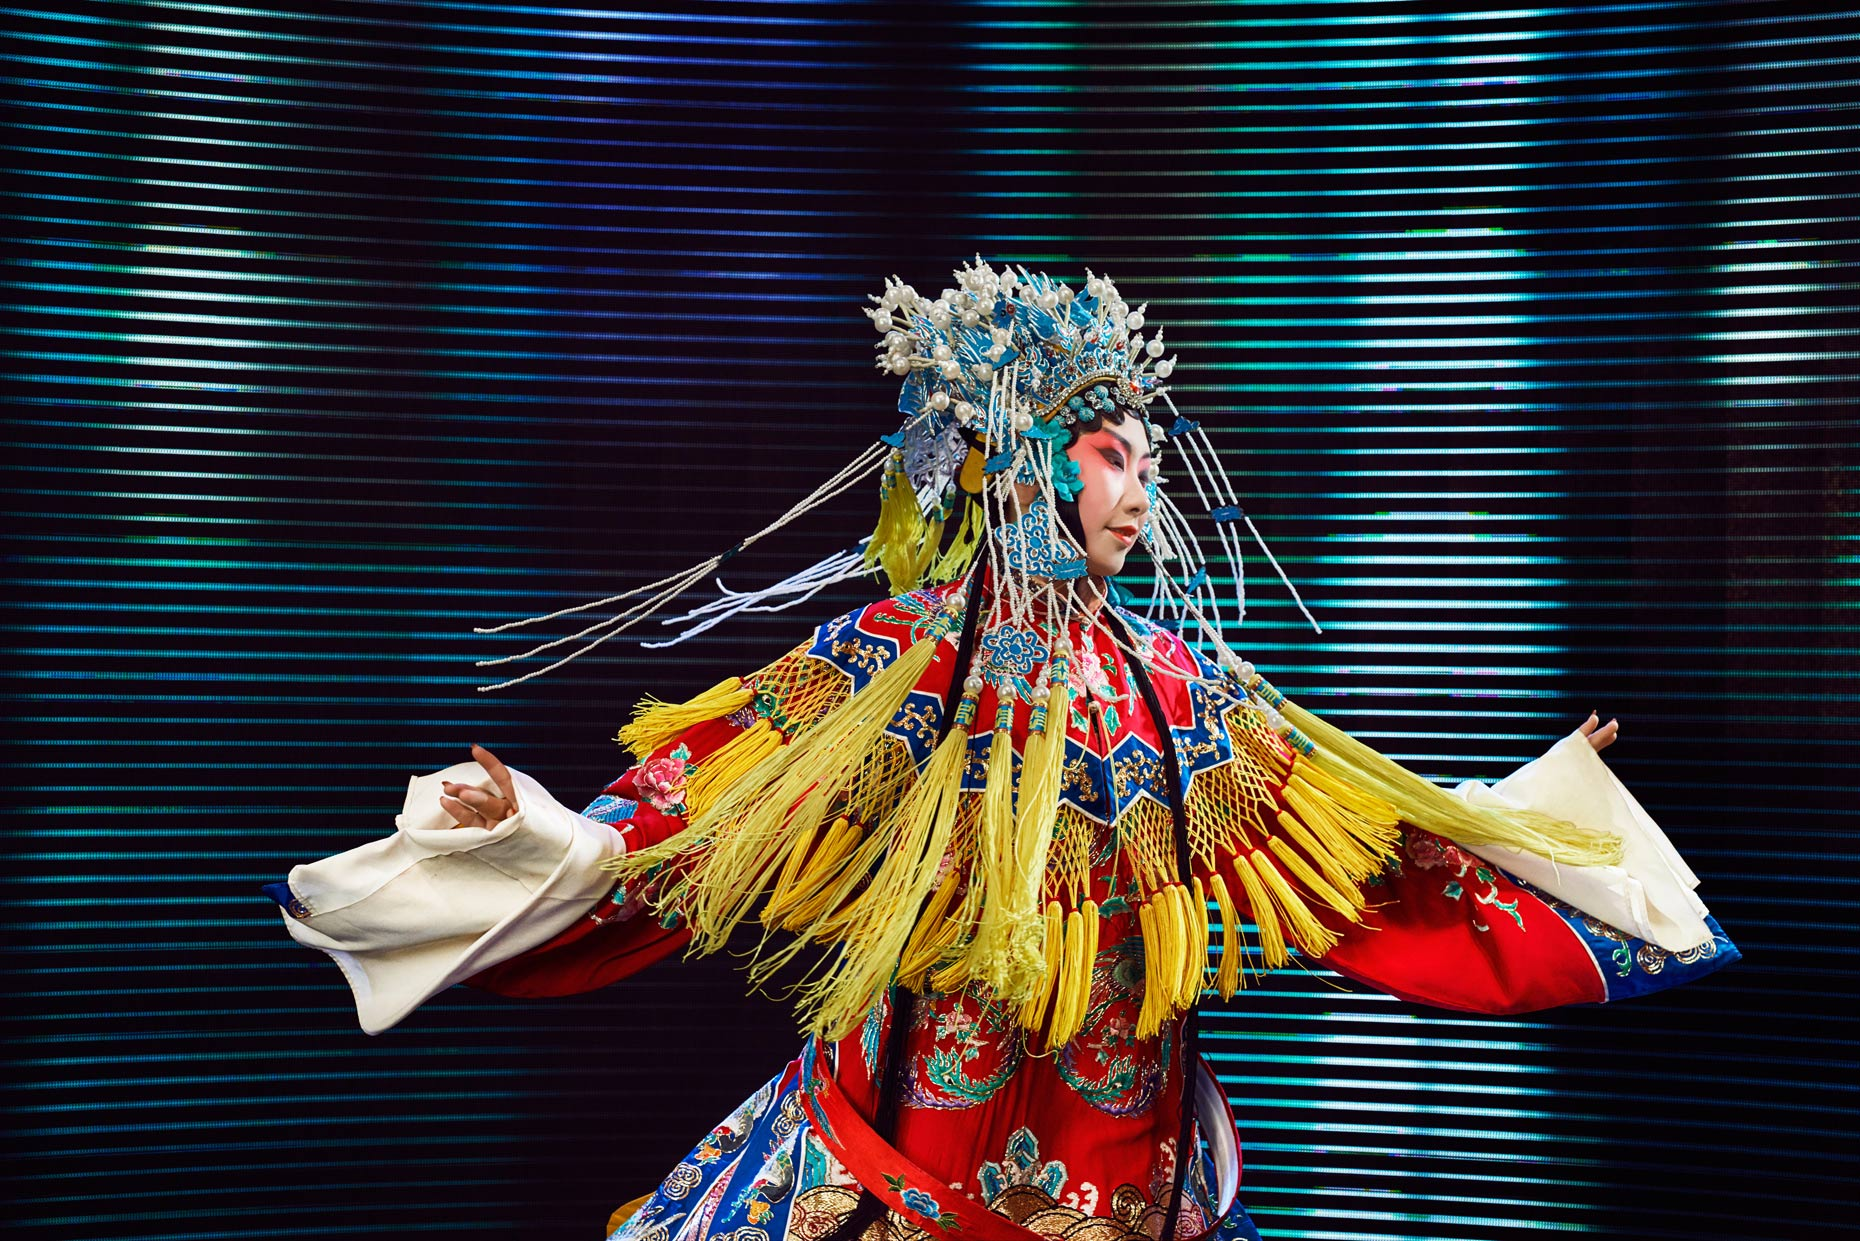 Abbott_China_Beijing_Shot_08_Chinese_opera_0235_Highres_TIFF_006